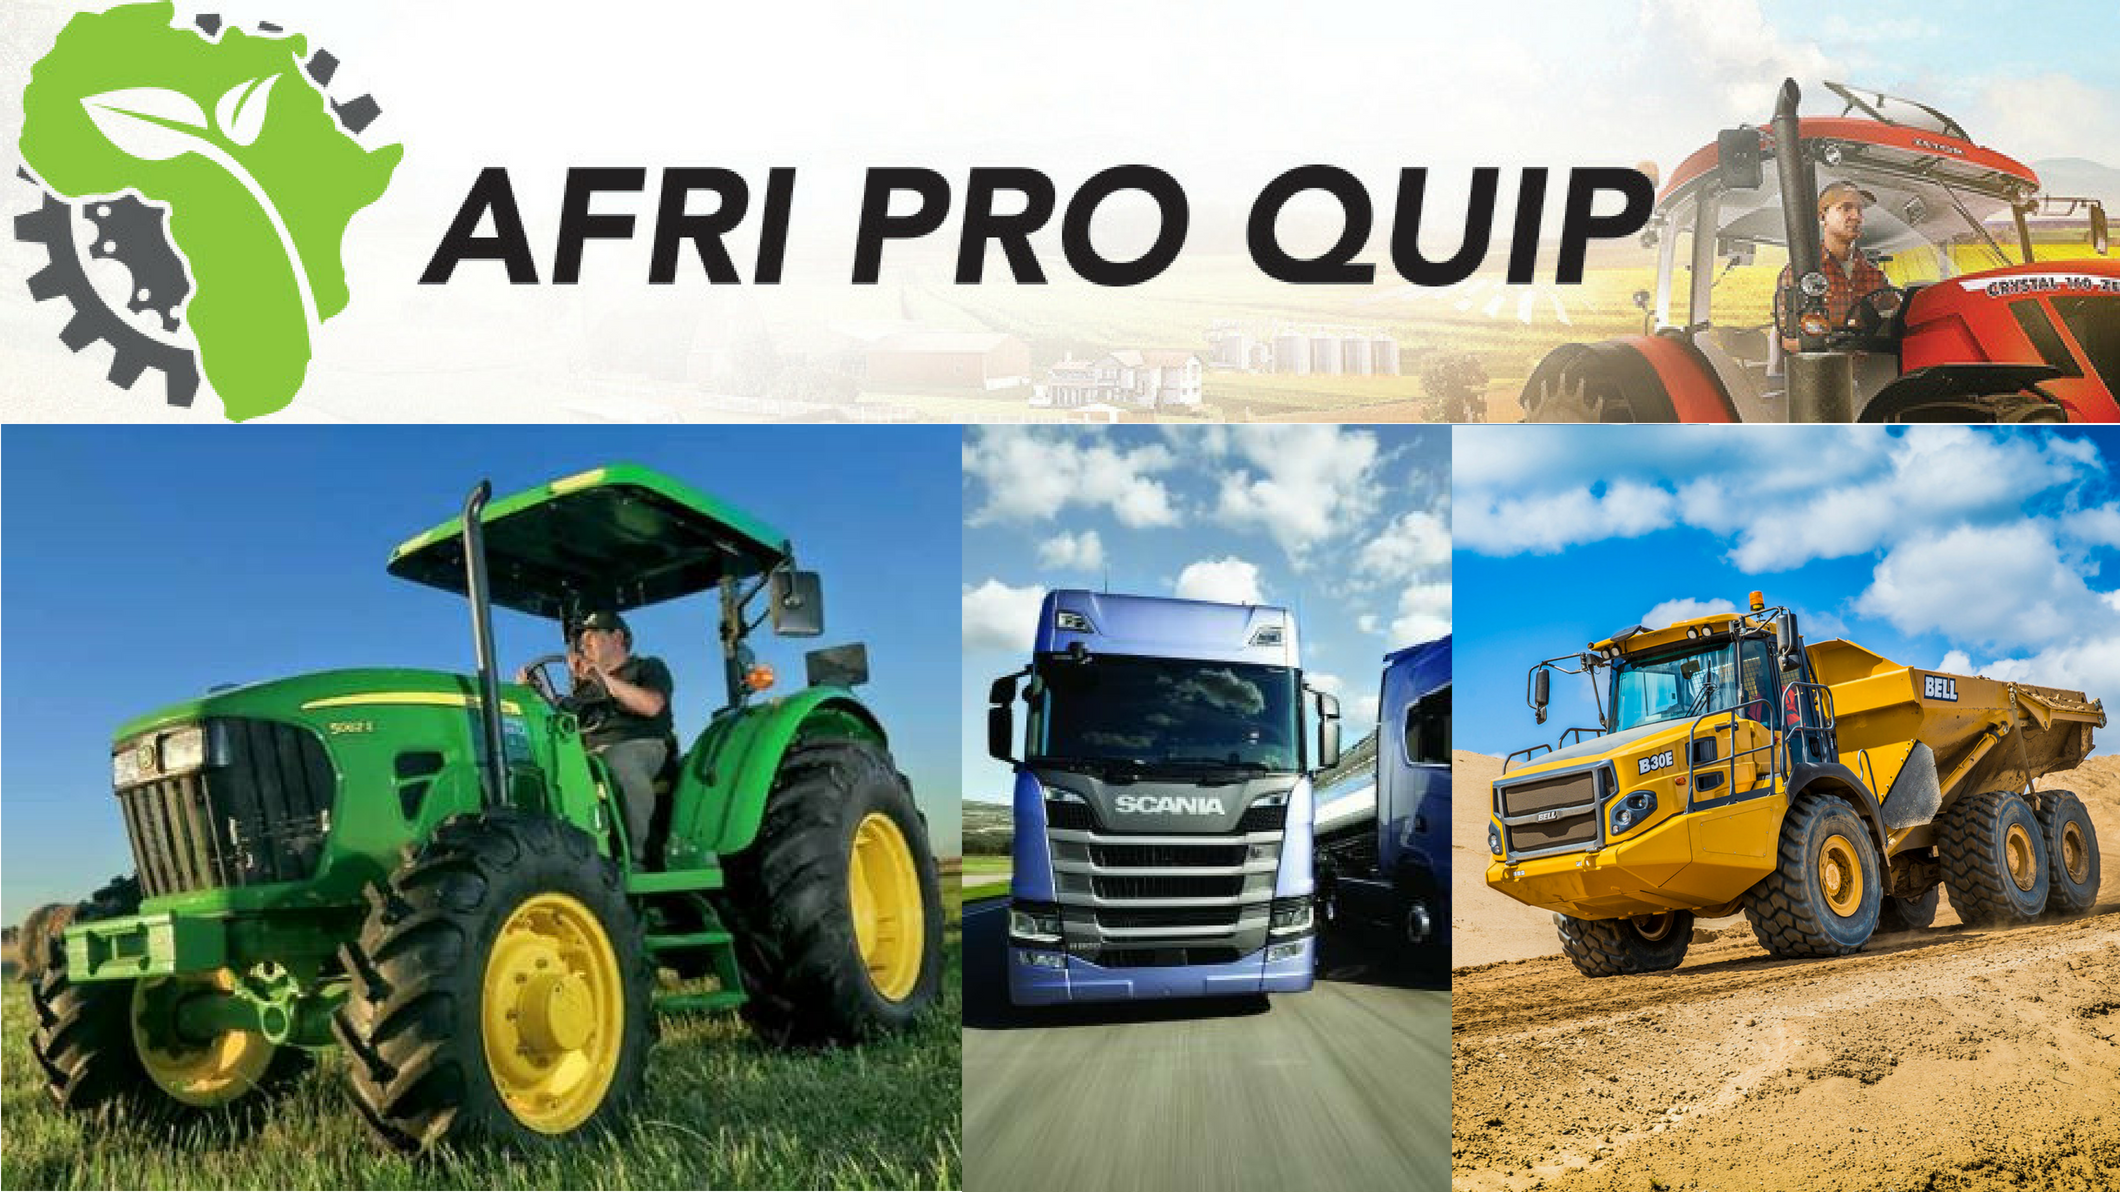 Getting Noticed: Make the Most of Your Adverts on Afri Pro Quip